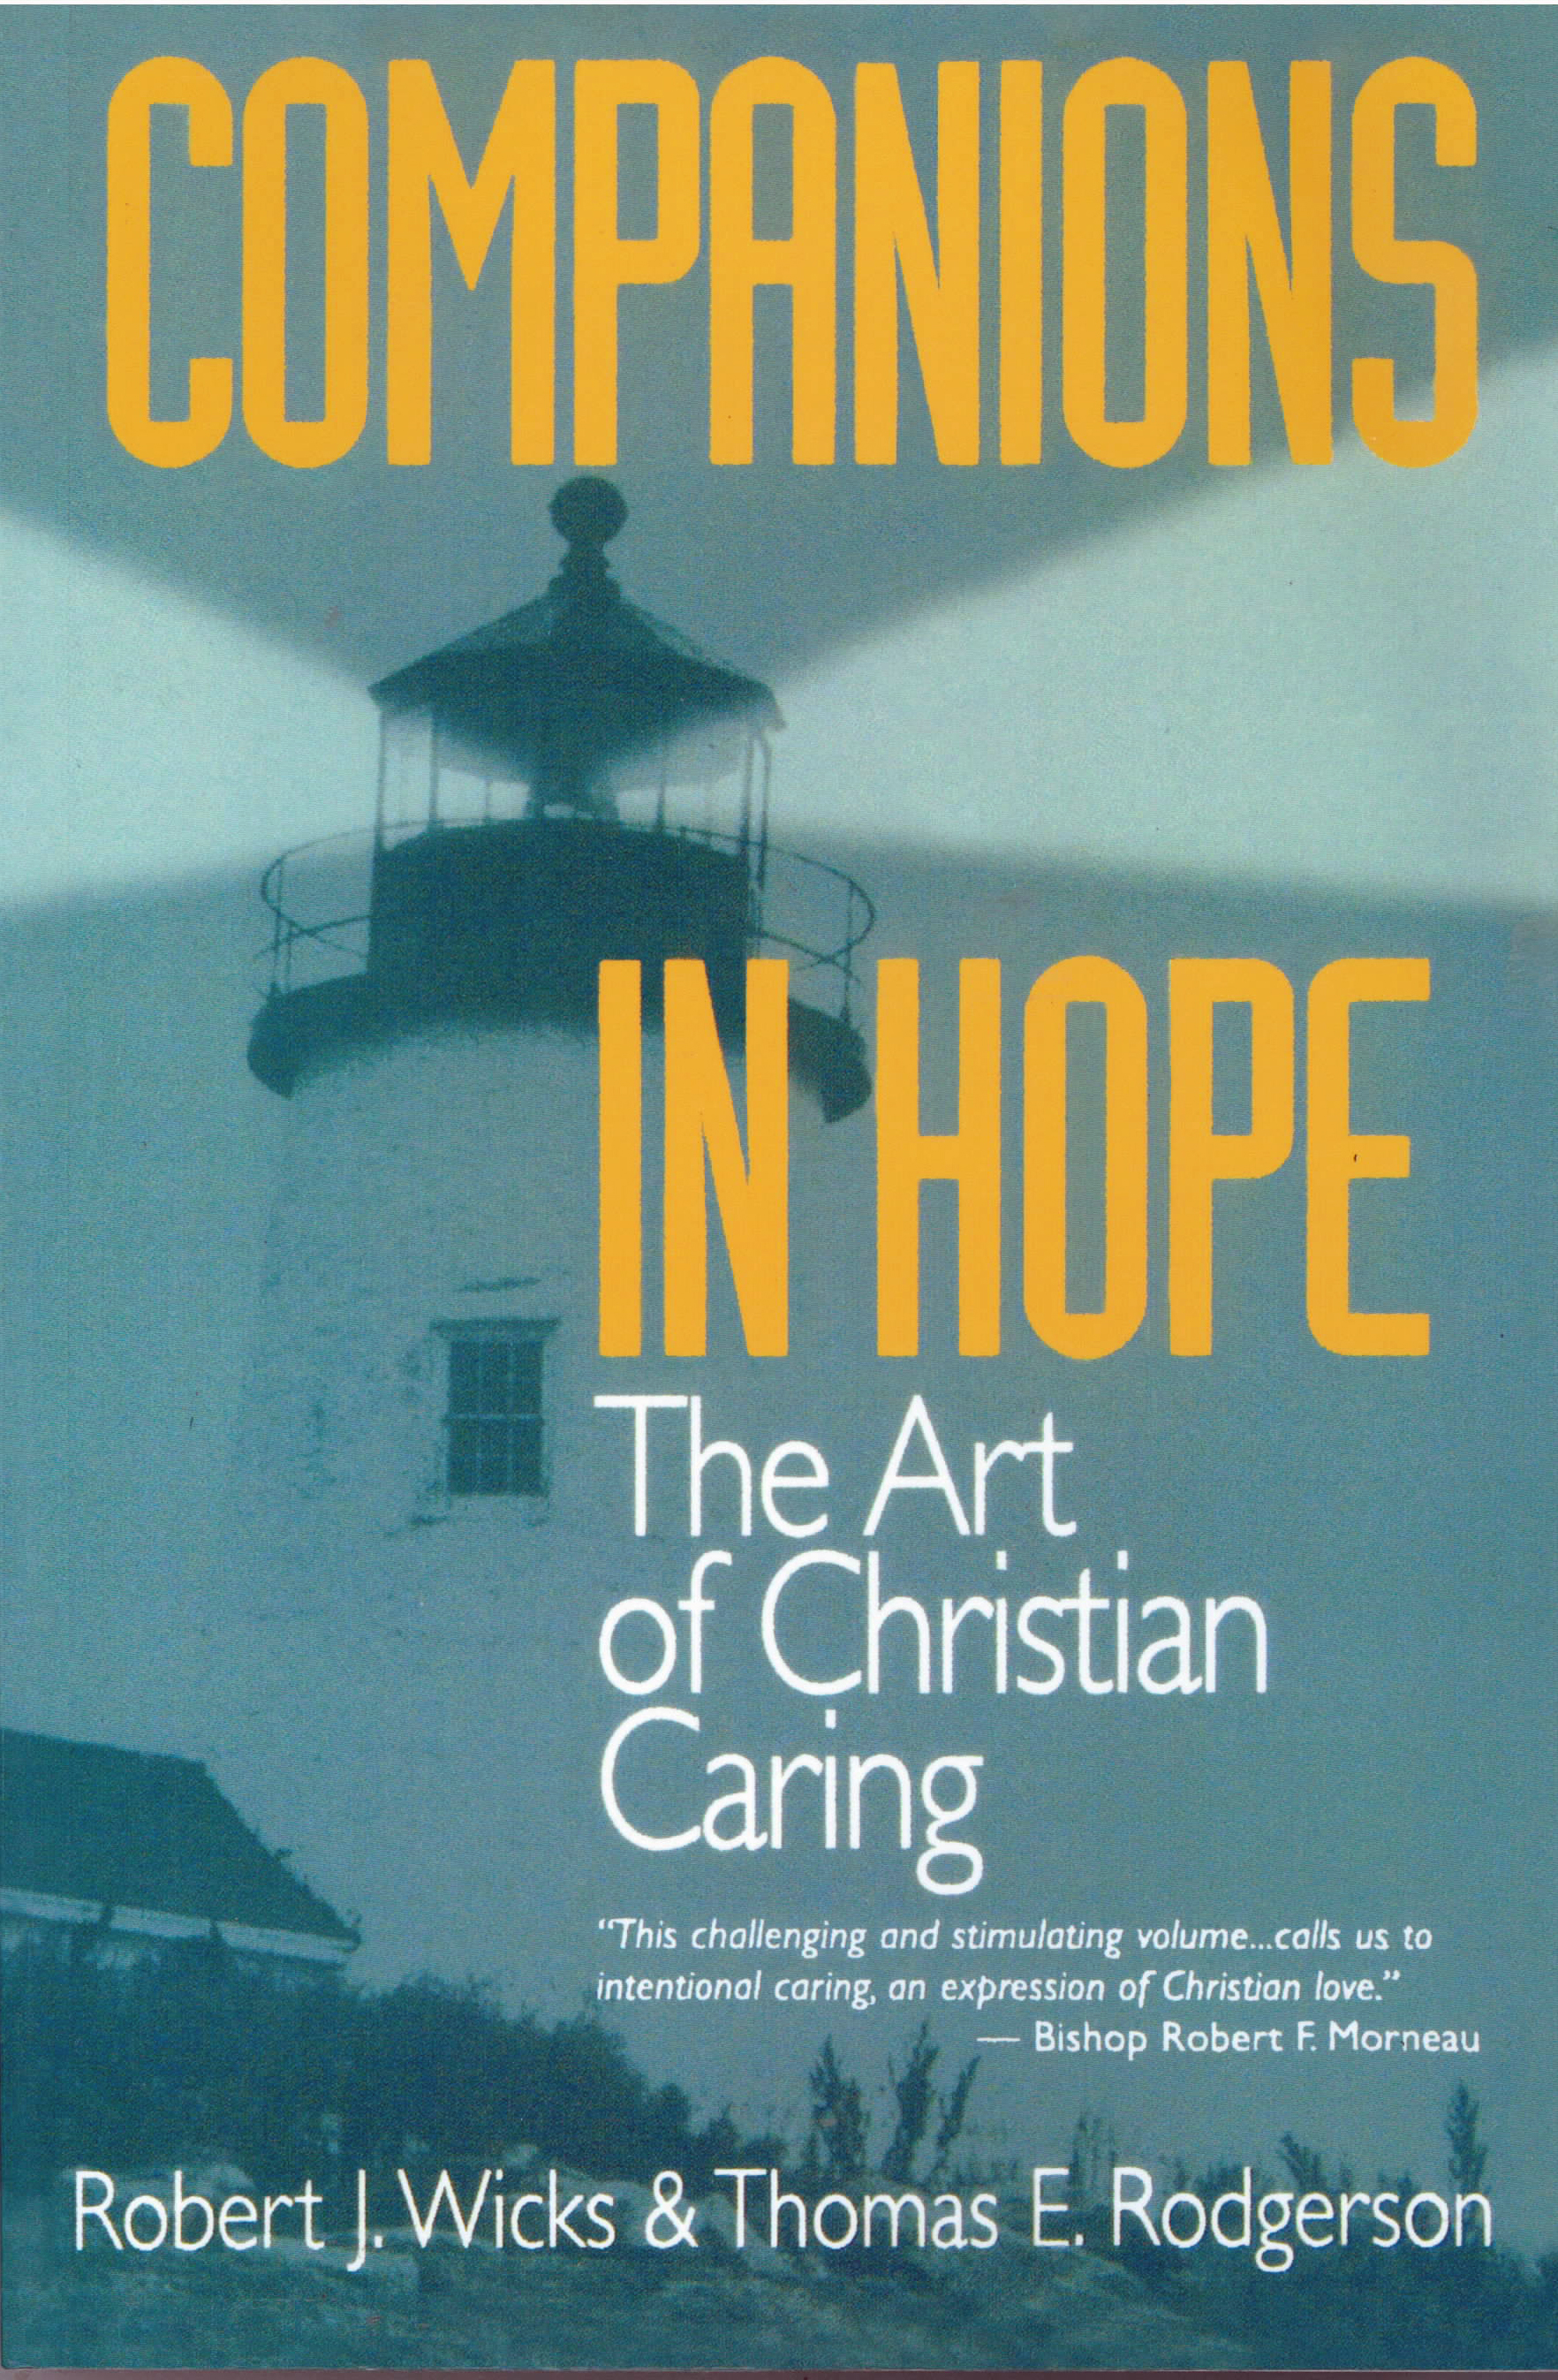 Companions In Hope by Robert J. Wicks 109-9780809137817